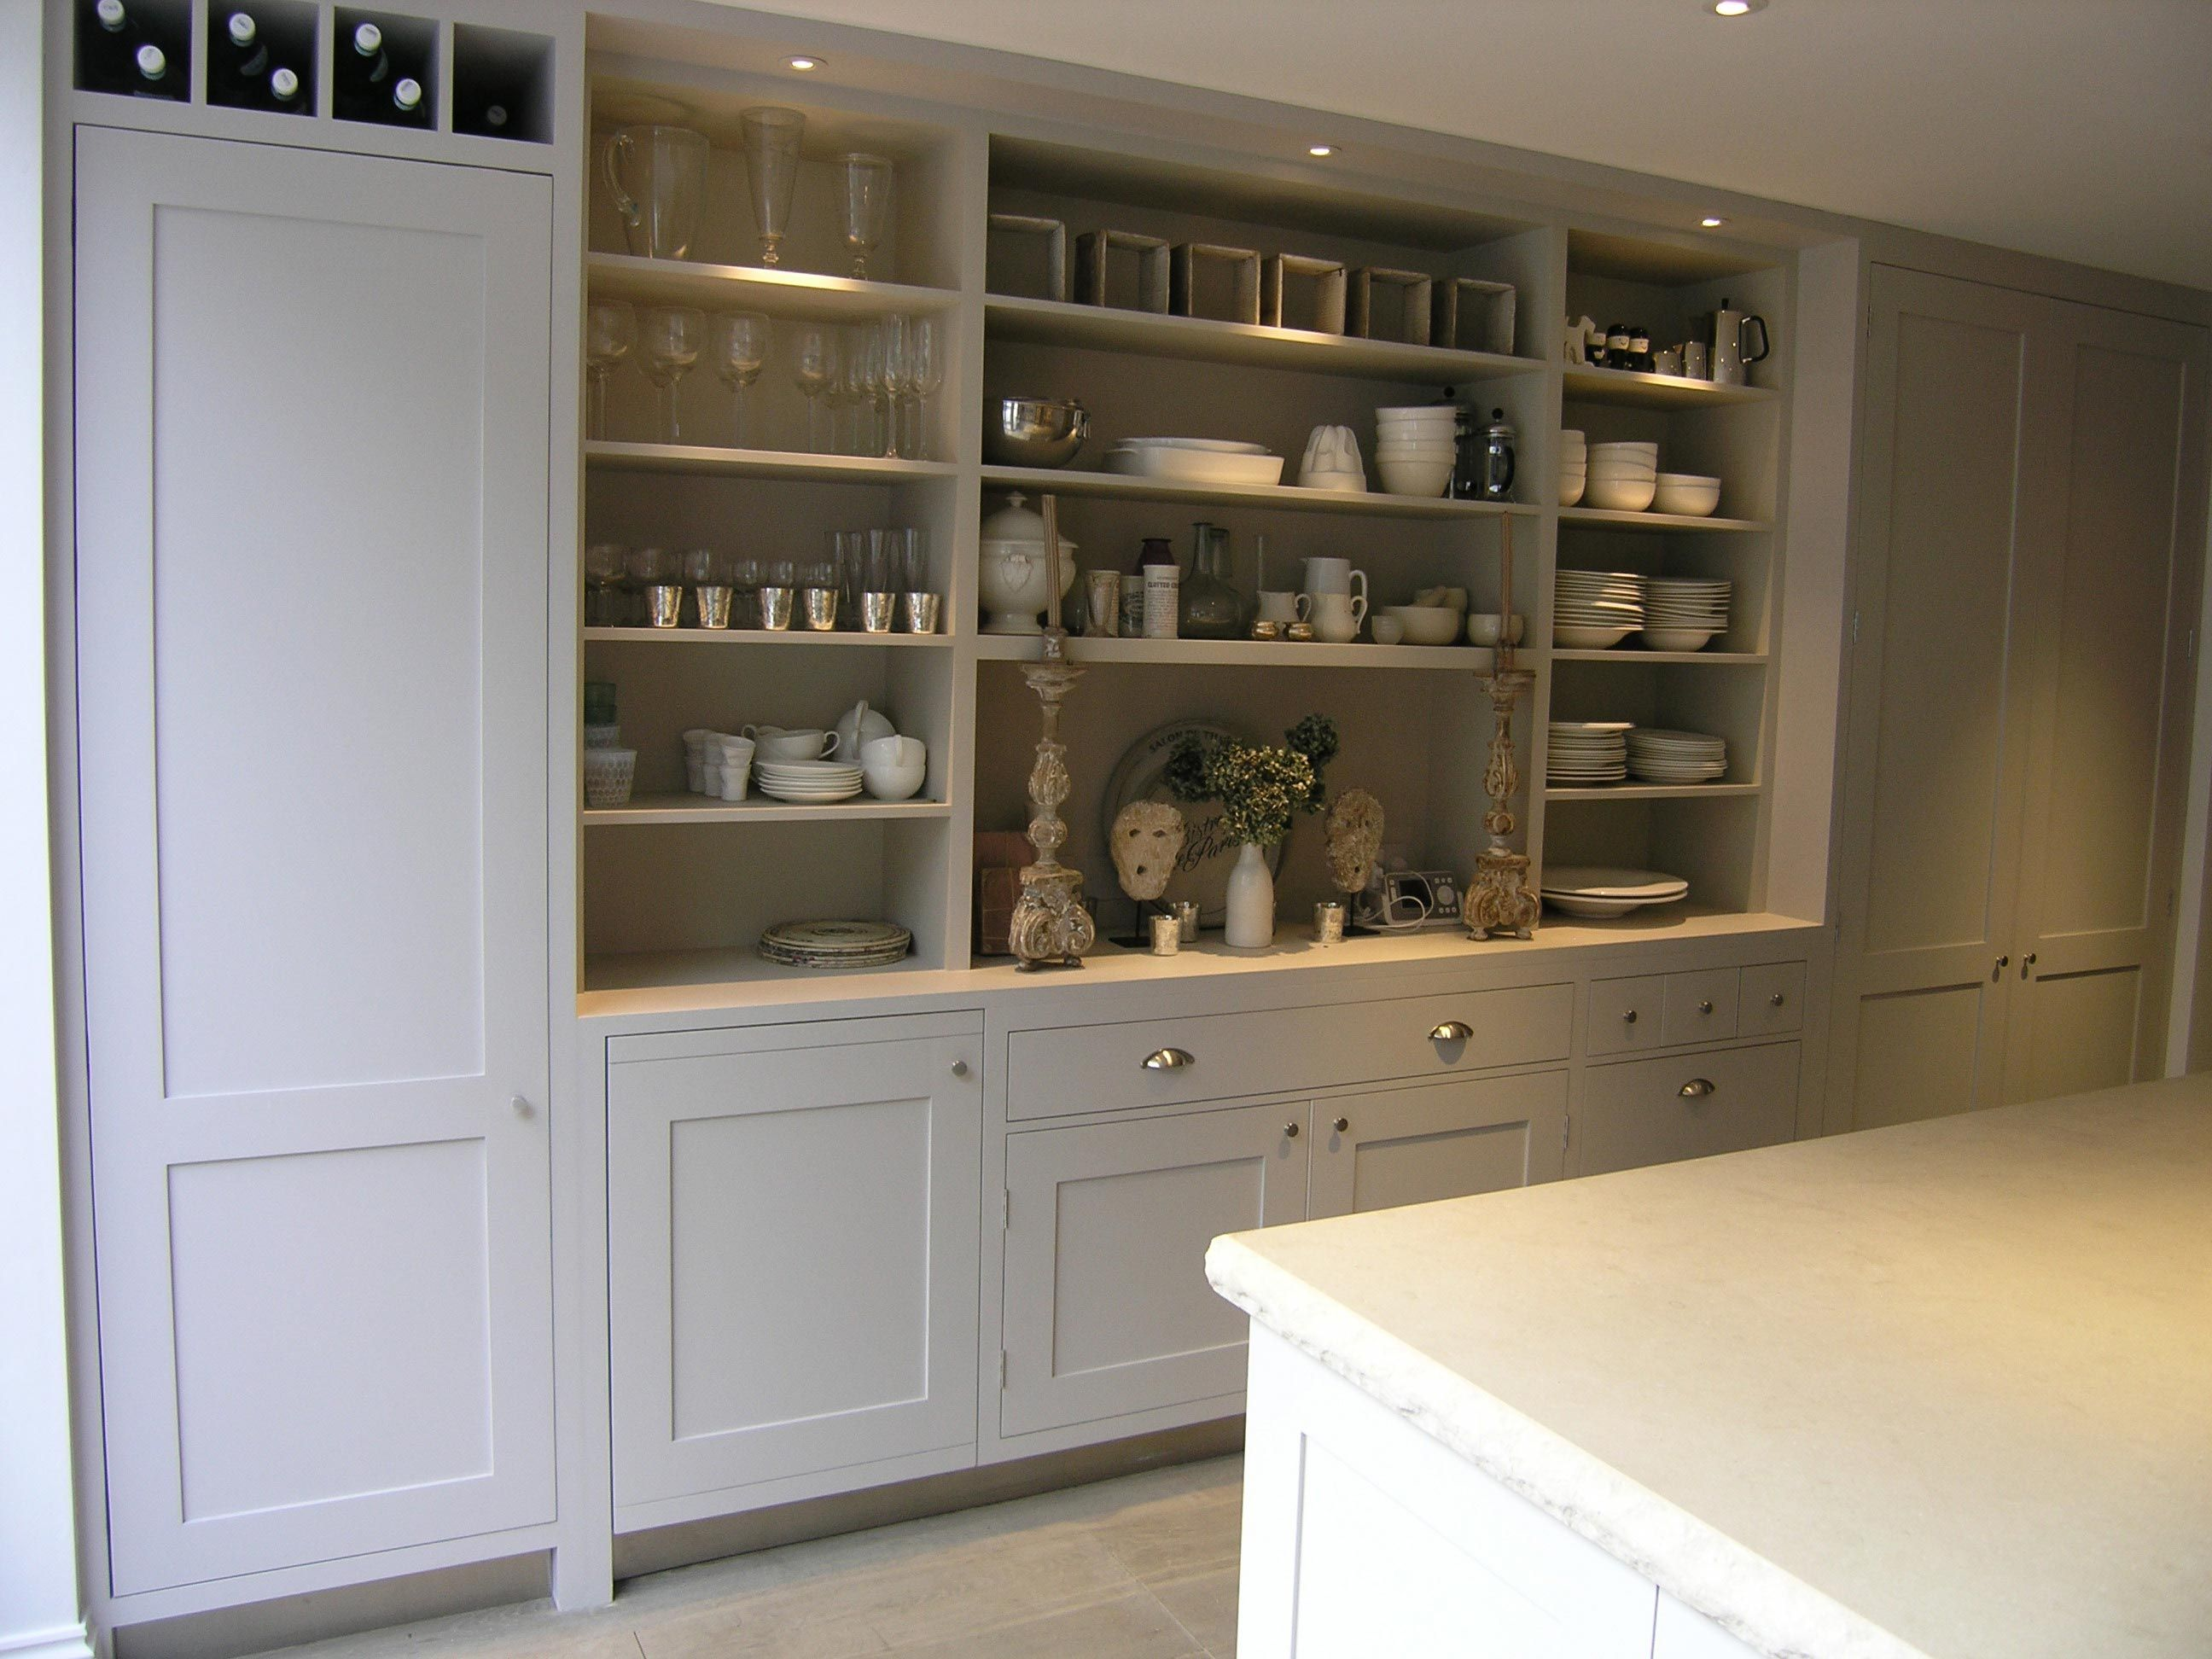 London Shaker Kitchens Design And Installation, Clapham South West London